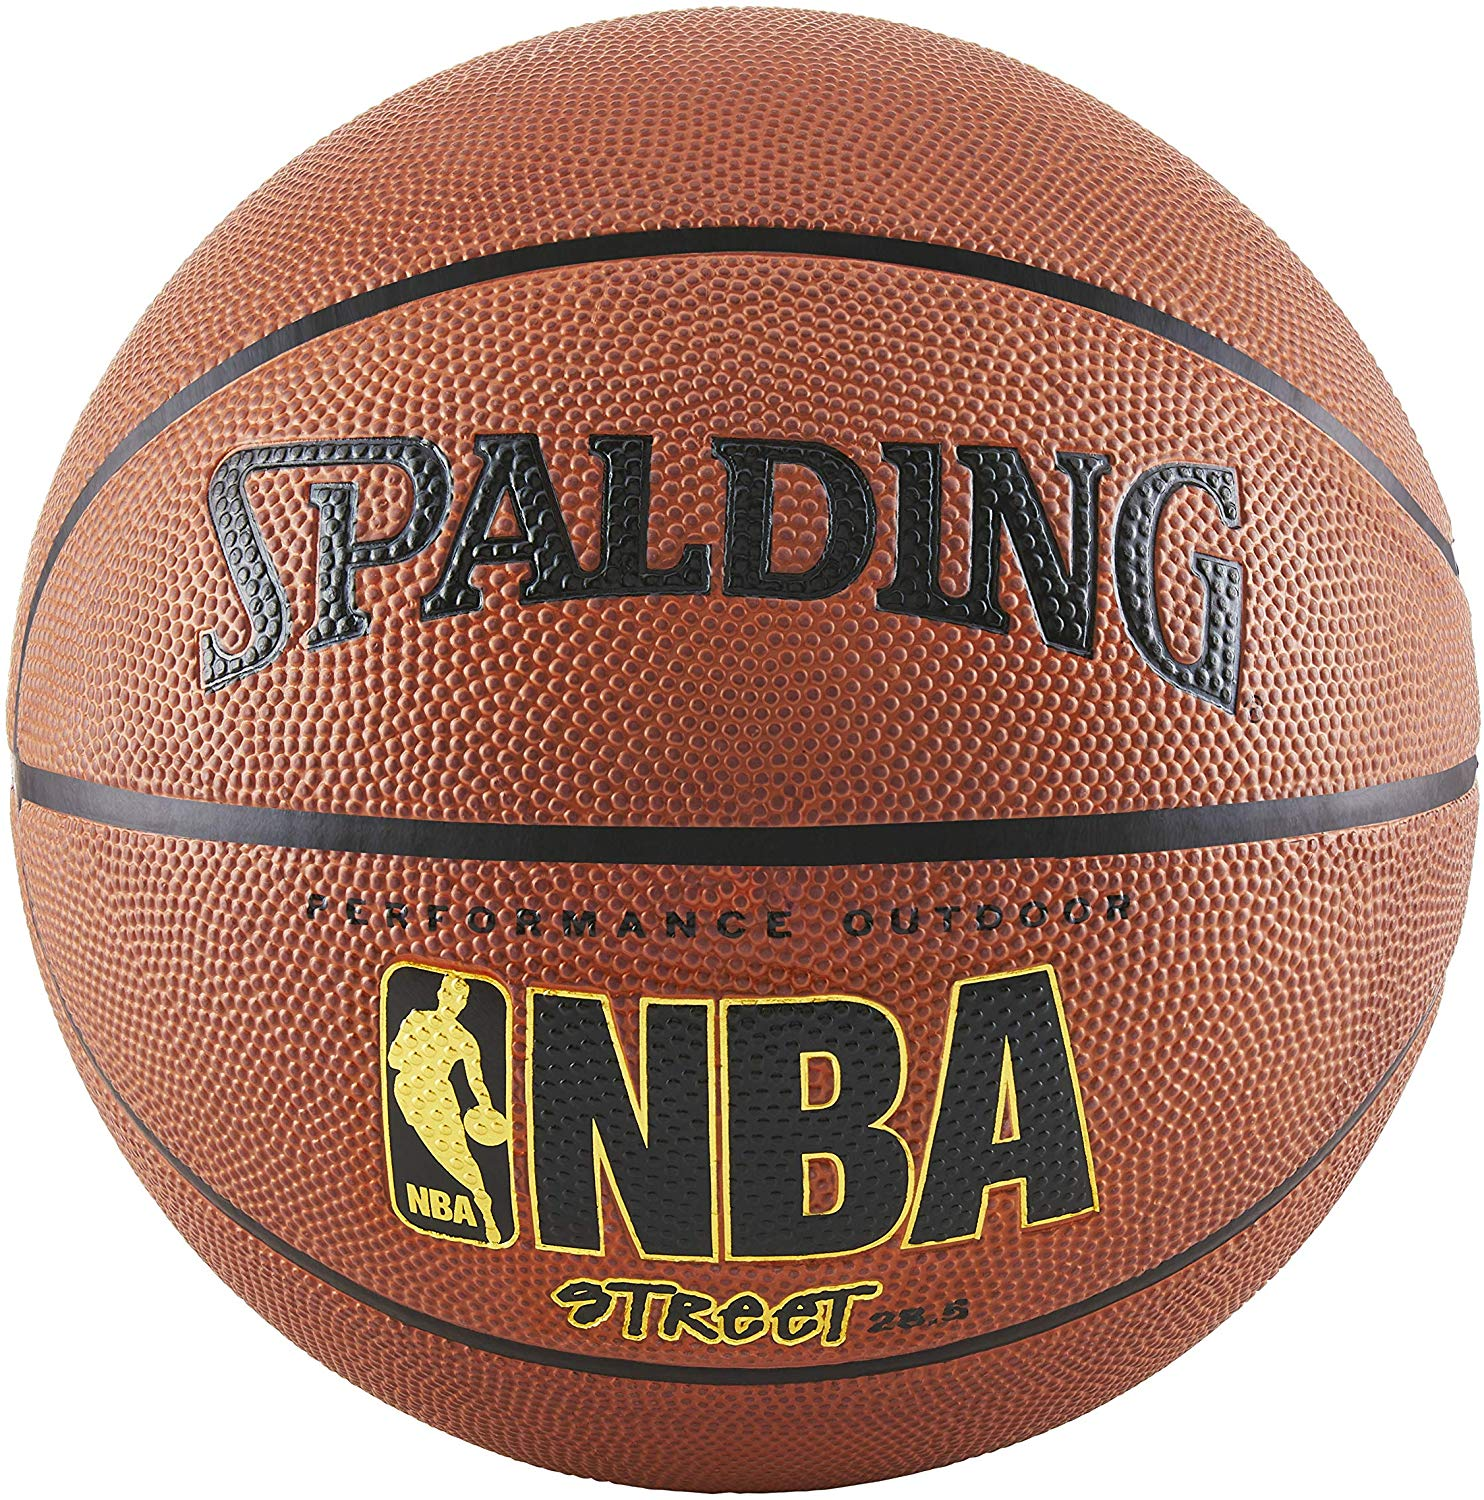 Top 9 Best Spalding Basketballs in 2021 Reviews